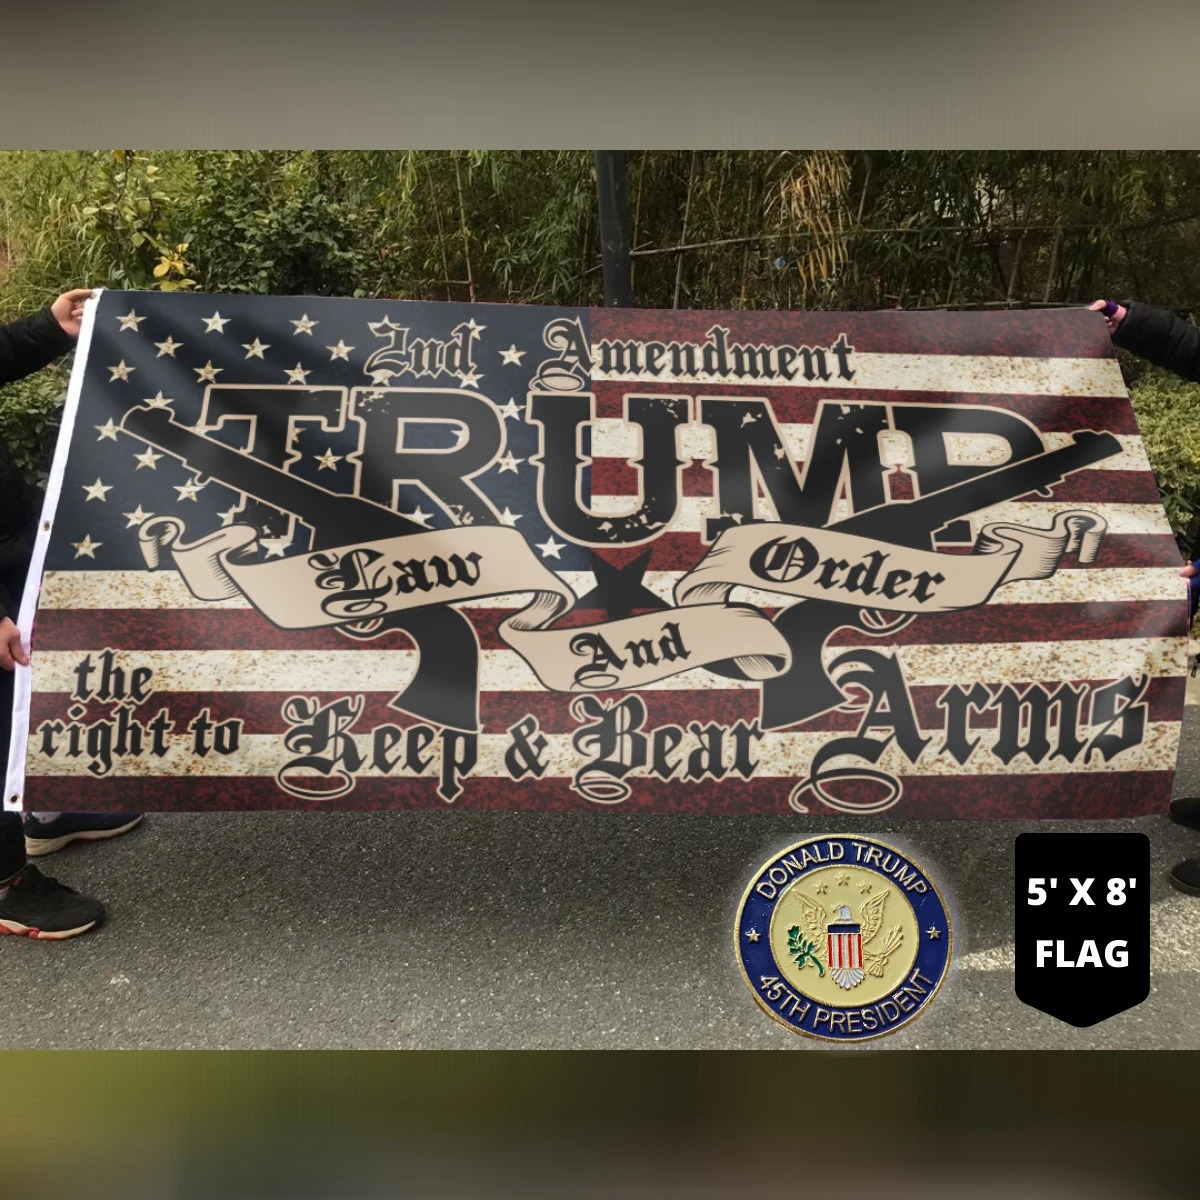 2nd amendment Trump law and order the right keep and bear arms flag 9